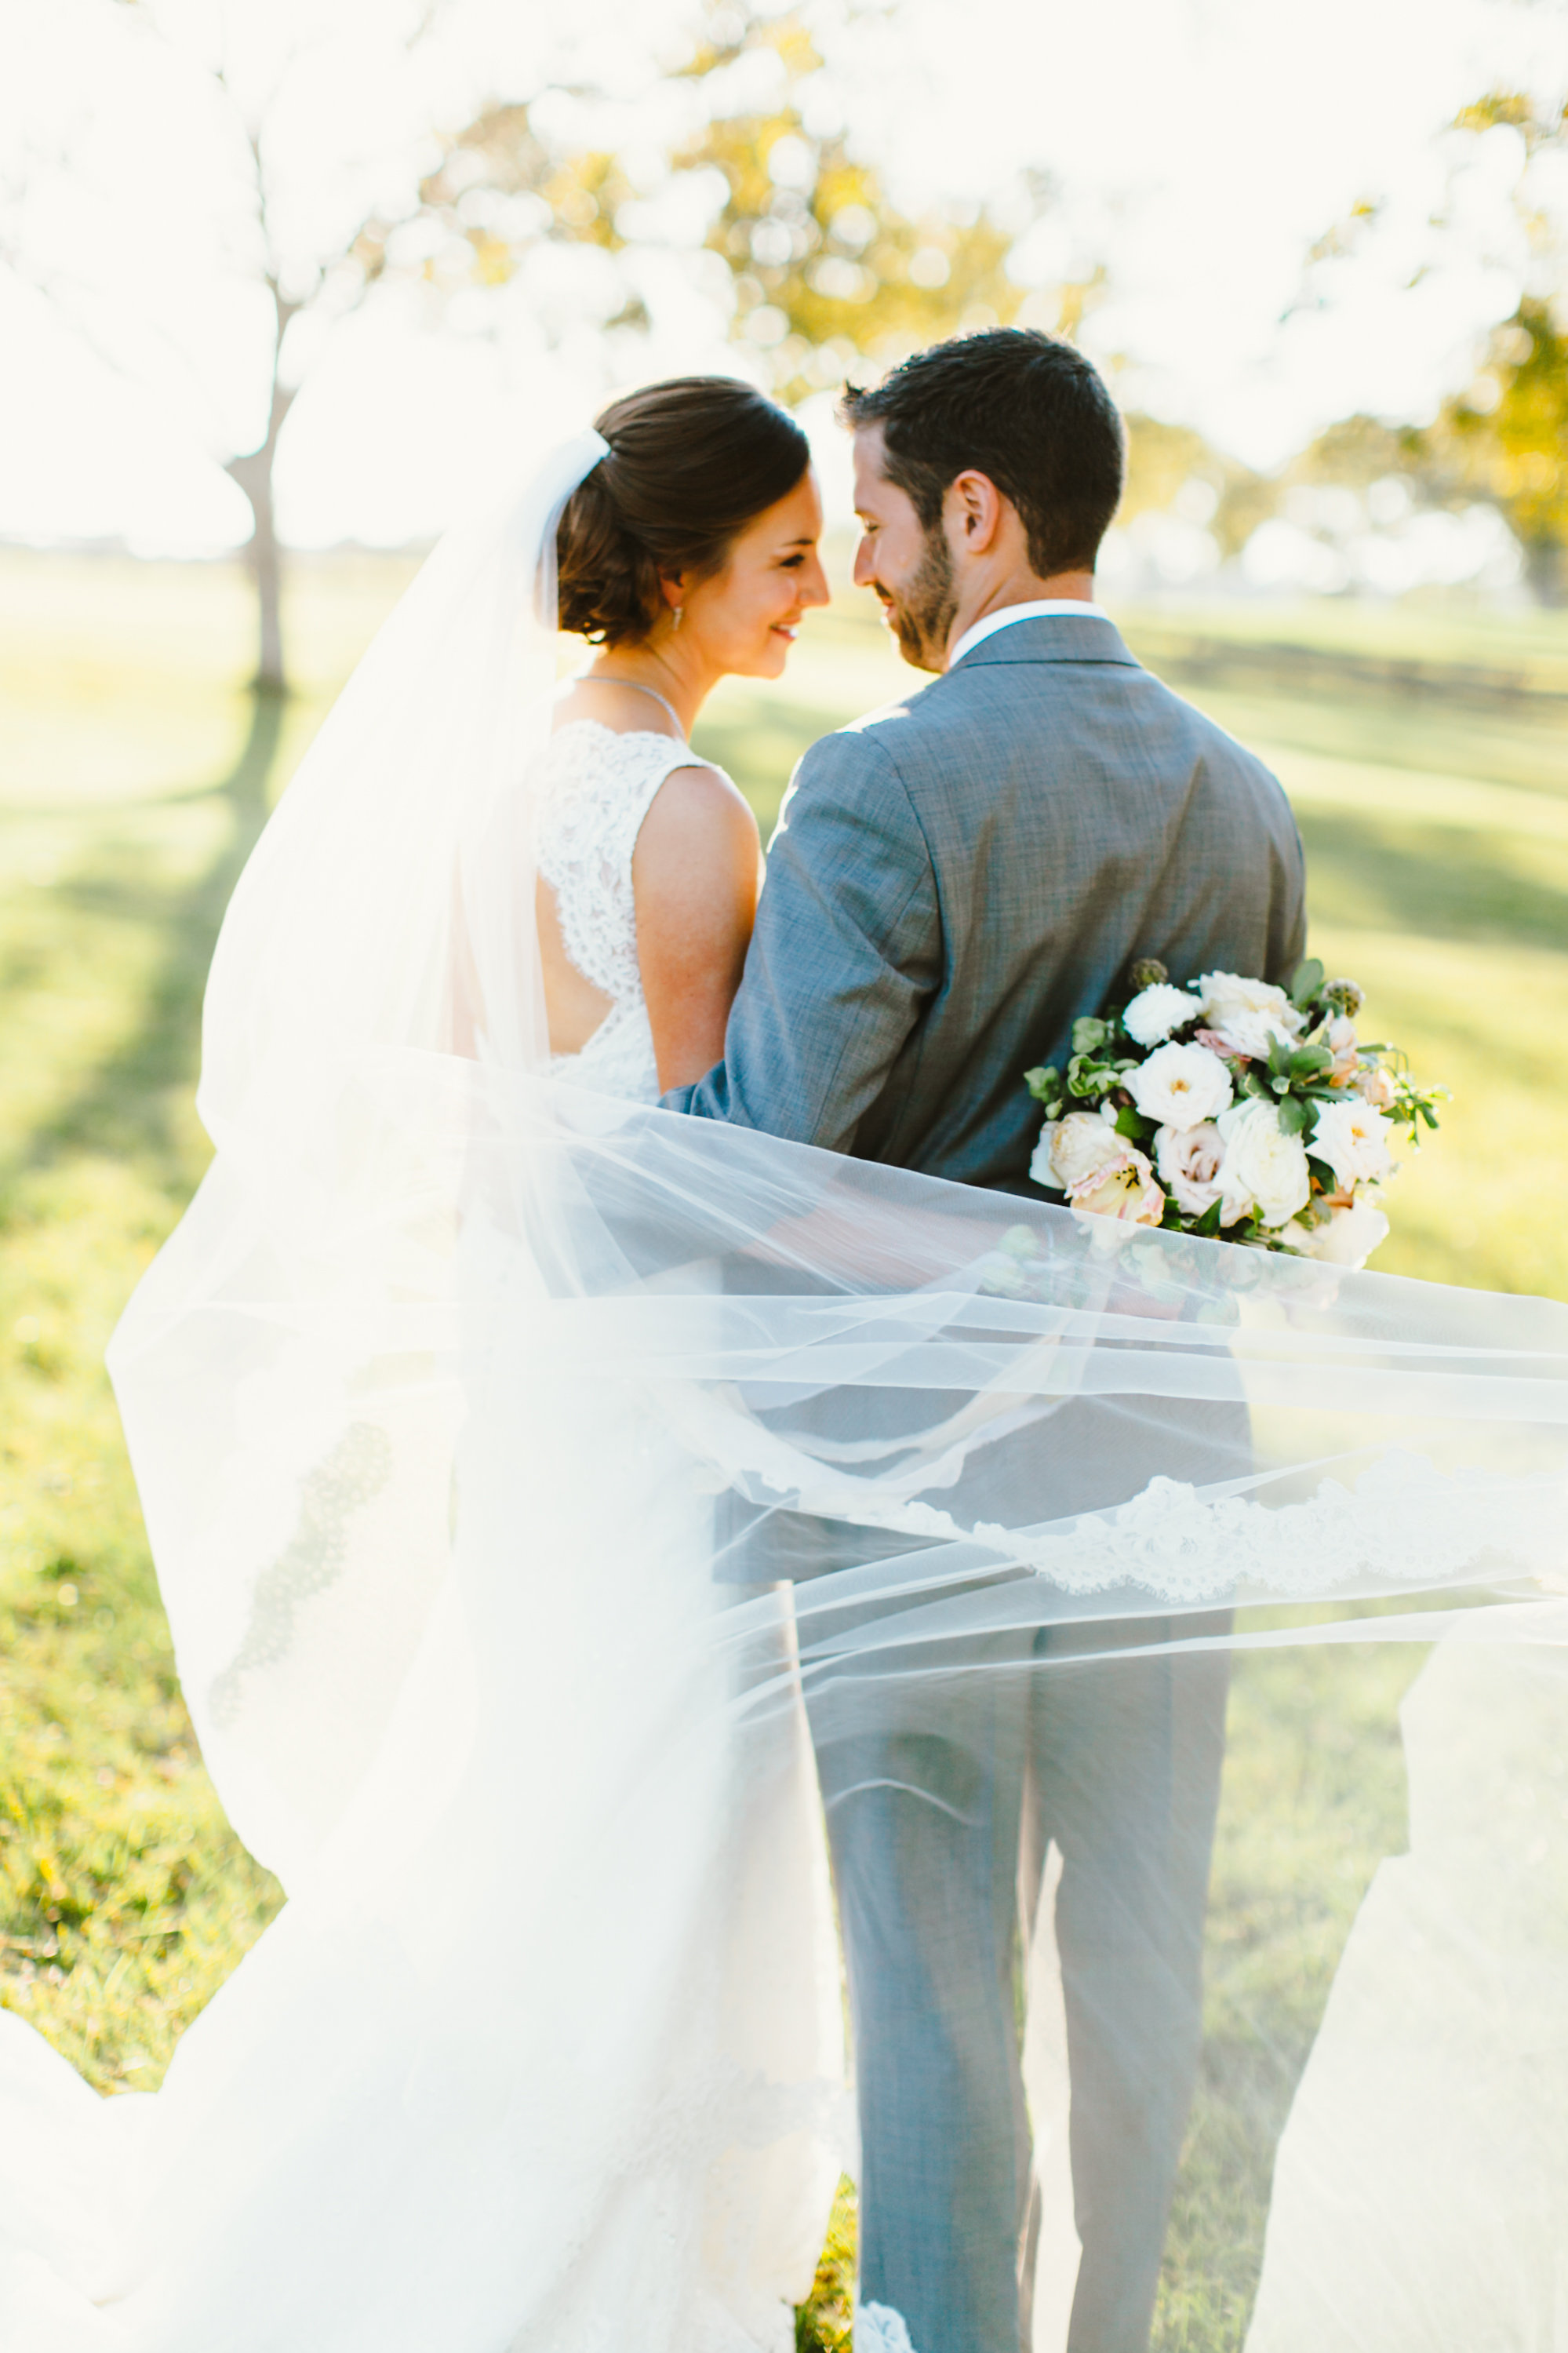 Melissa and Brian's Countryside Wedding